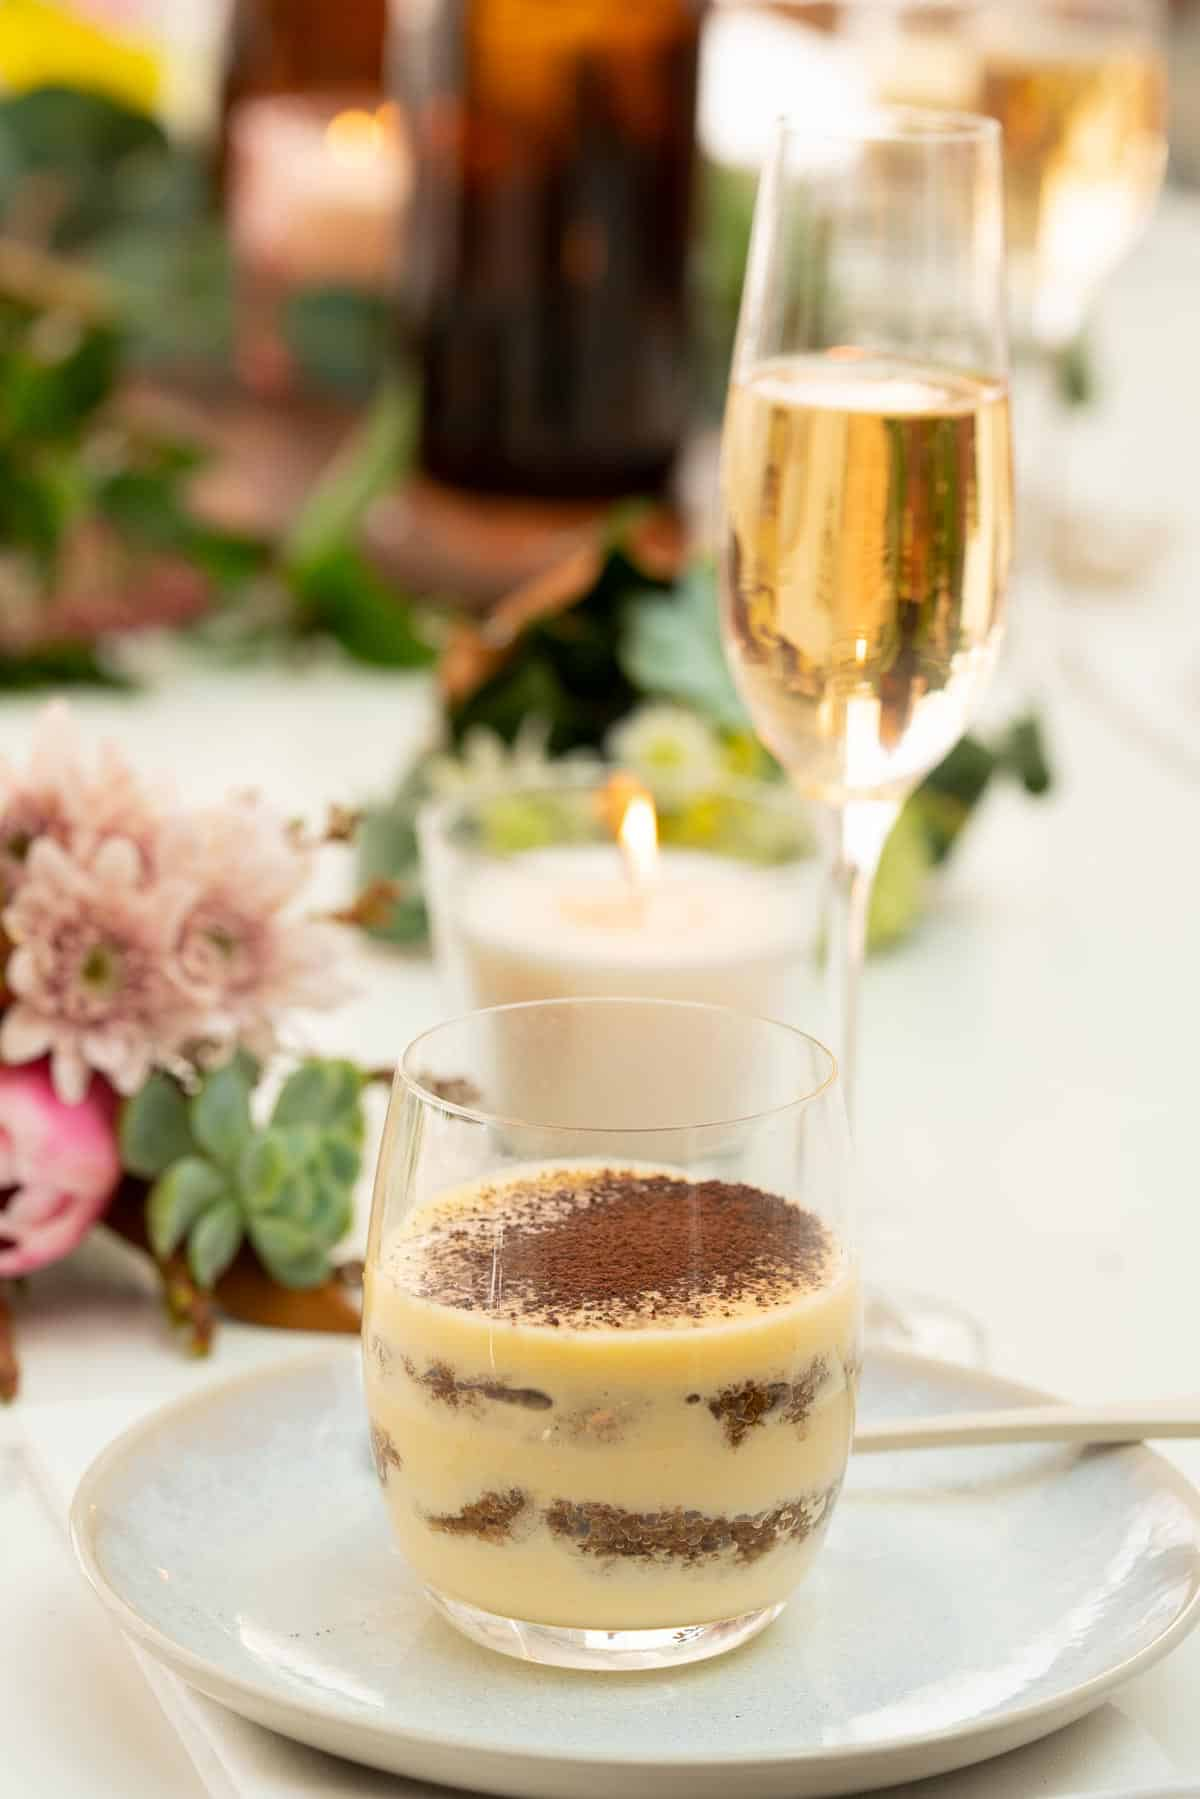 A tiramisu cup sitting on a table decorated with candles and fresh flowers, a glass of champagne and water dcanters visible in the background.